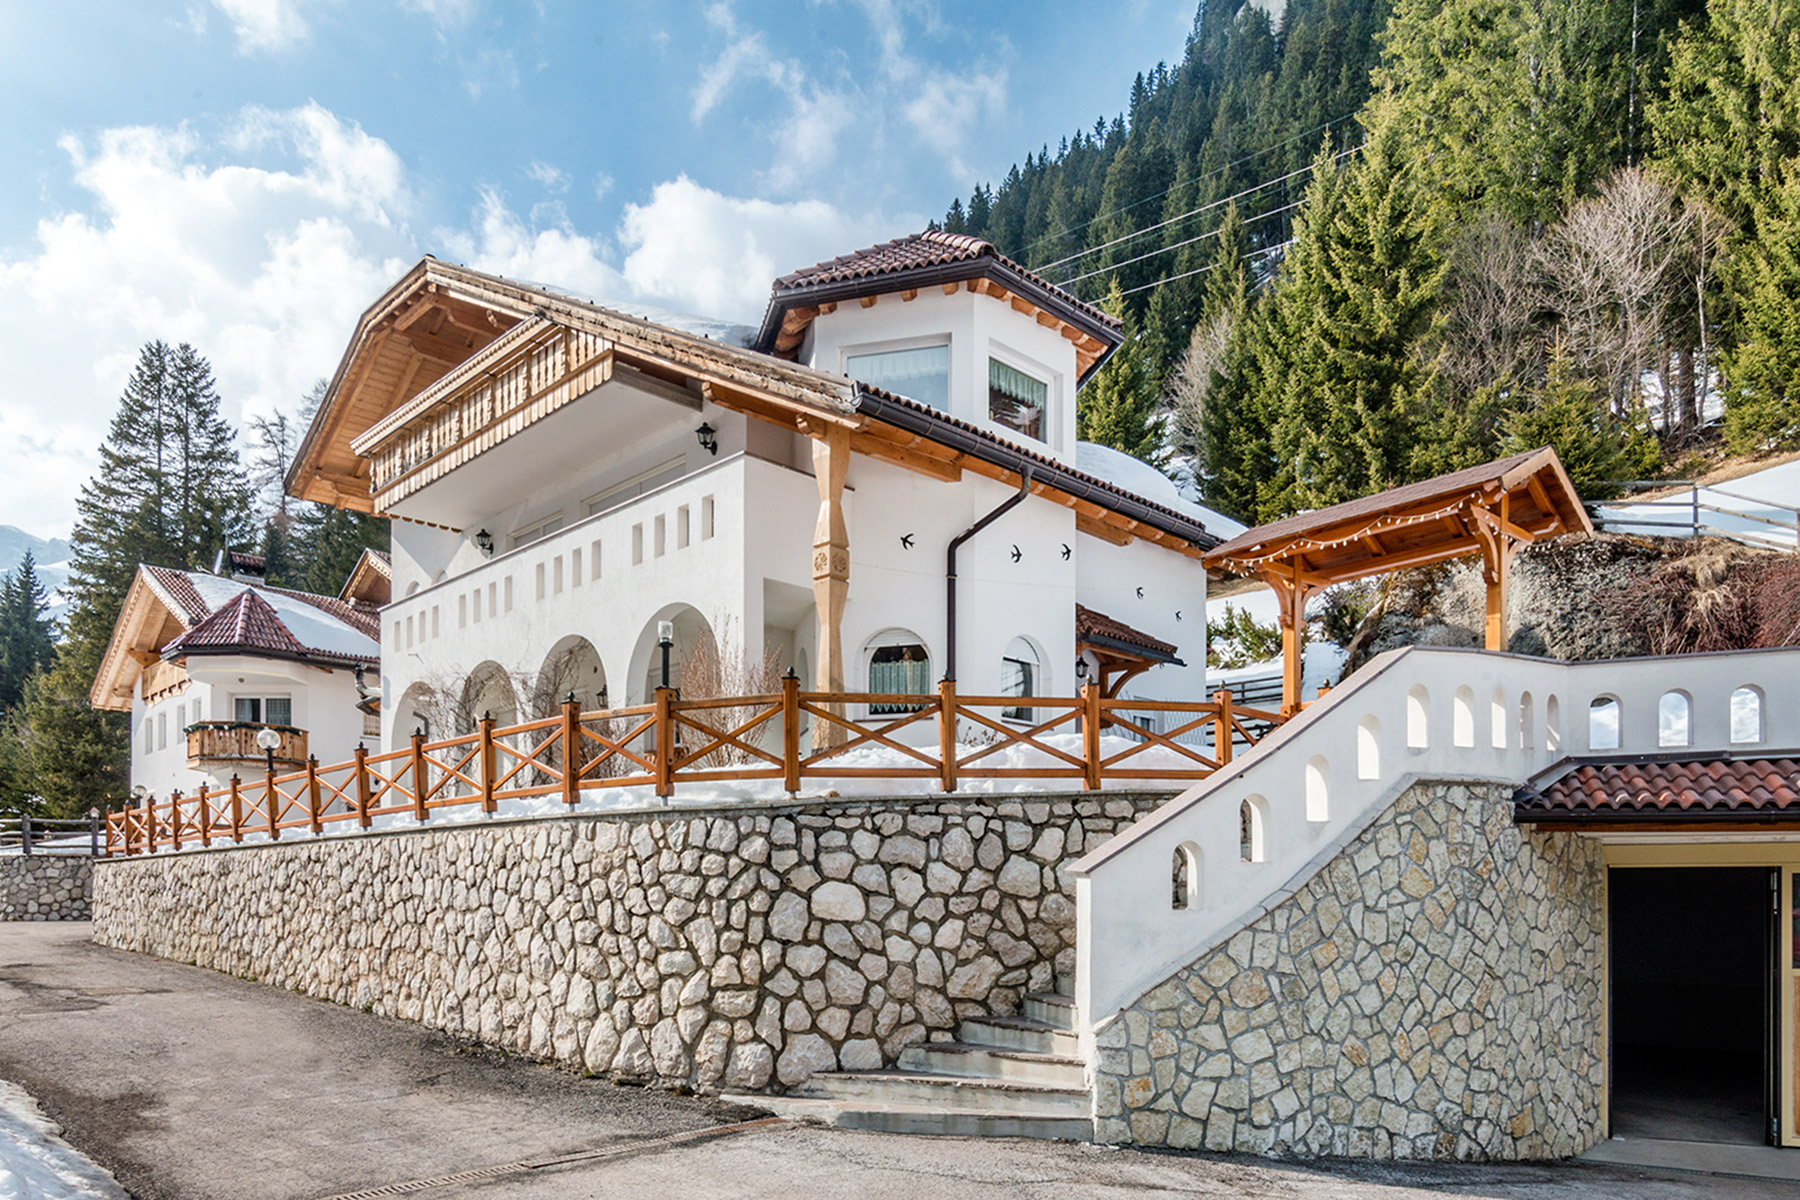 Additional photo for property listing at New construction Villa by famous architect Hermann Kostner Via Alfauro Arabba, Belluno 32020 Italy